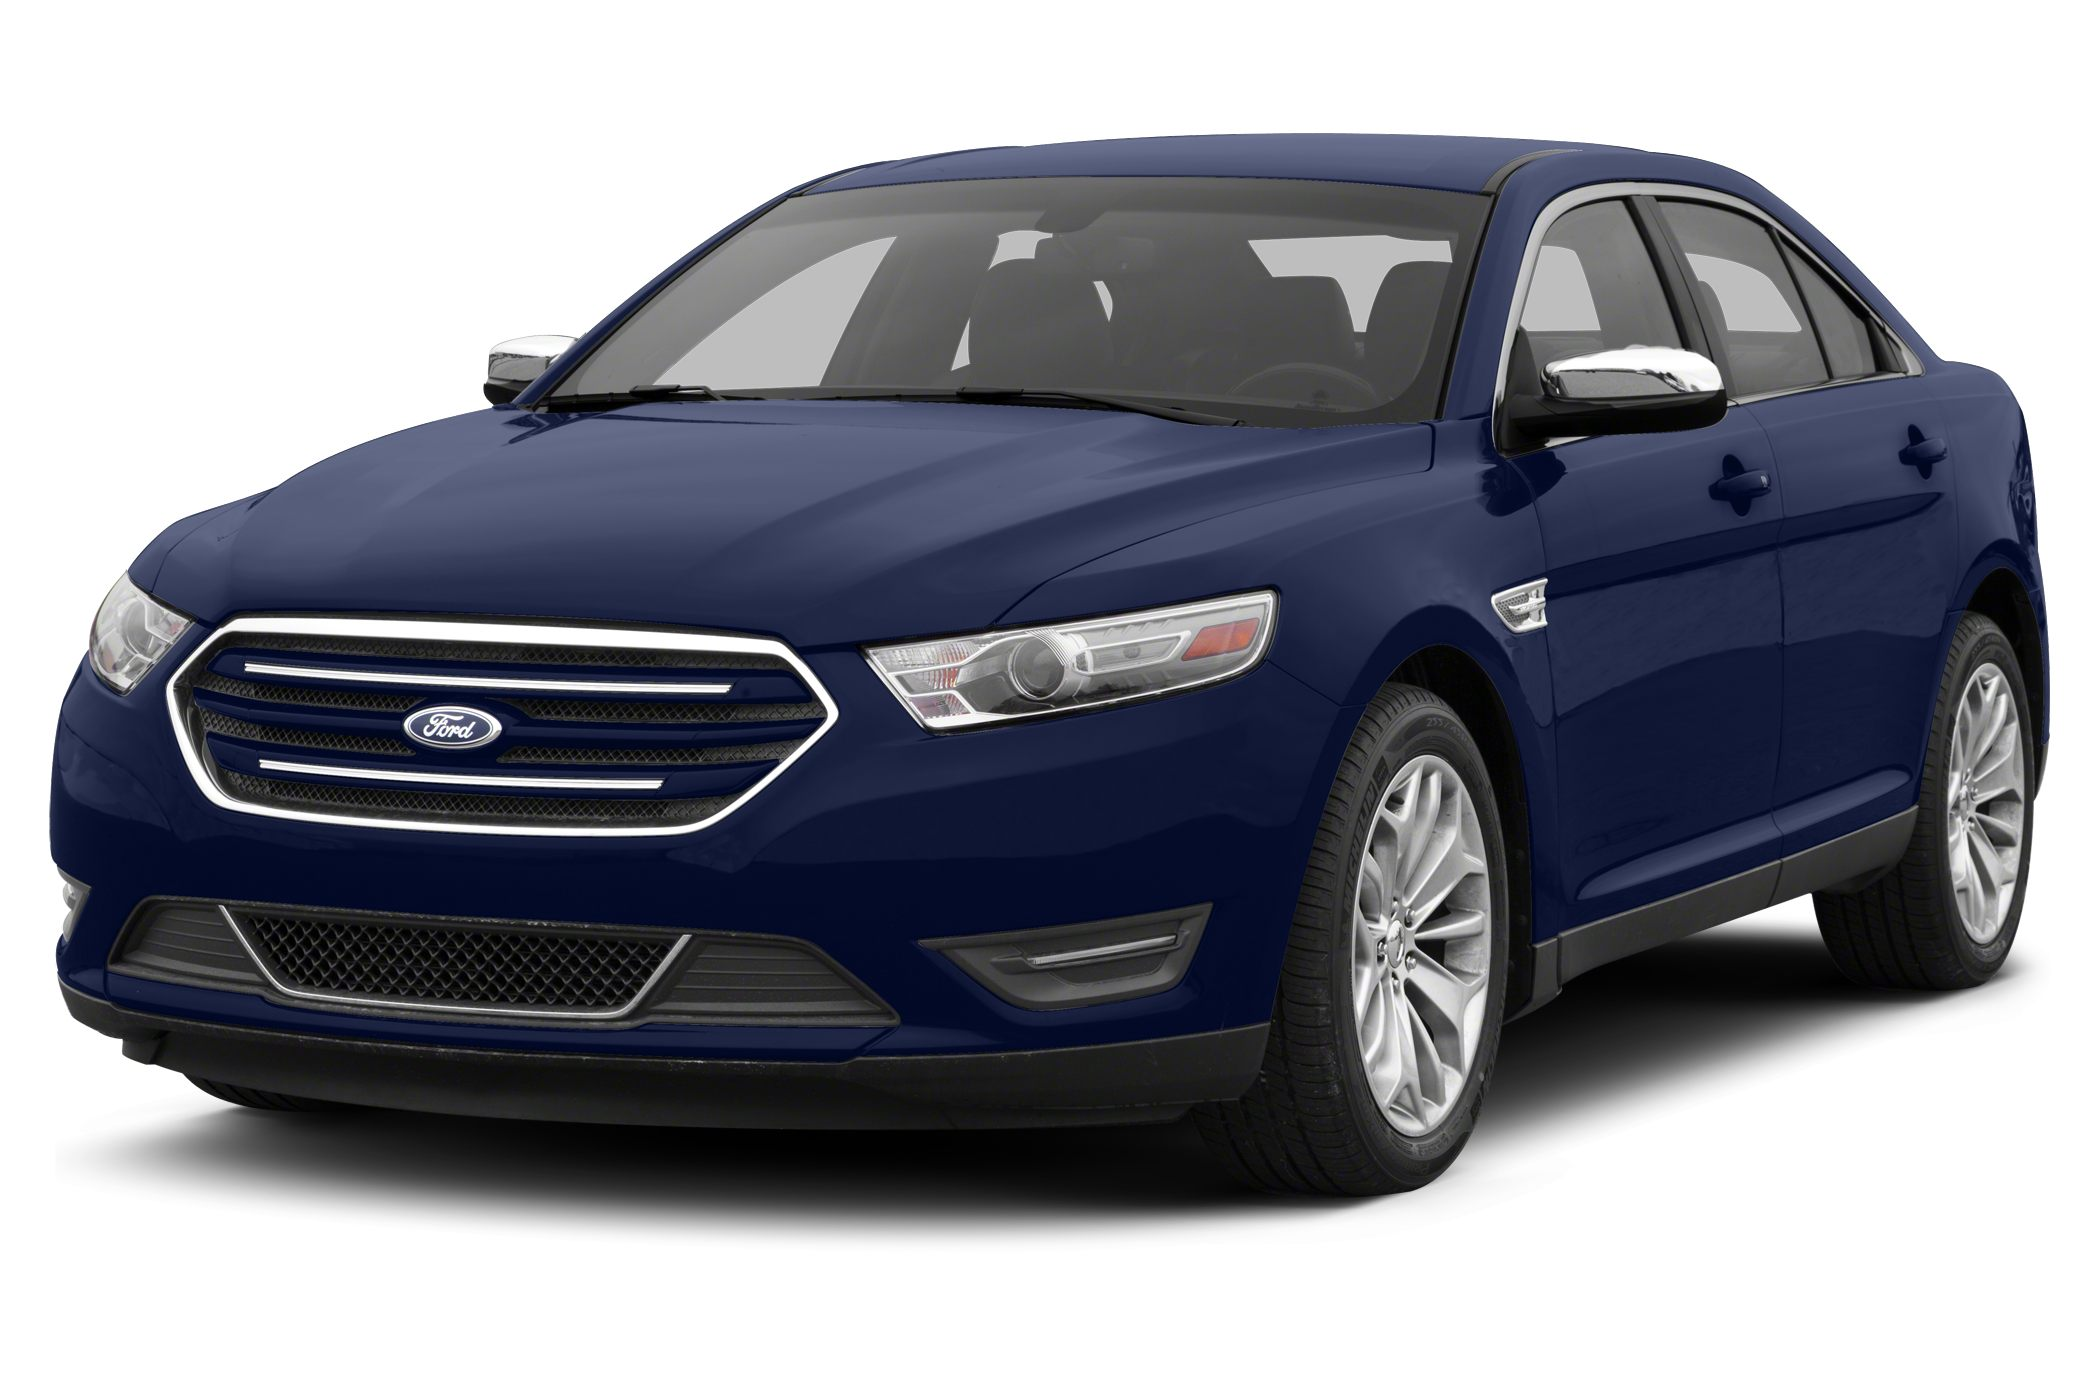 2014 Ford Taurus SEL Sedan for sale in Pittsburgh for $24,995 with 8,668 miles.